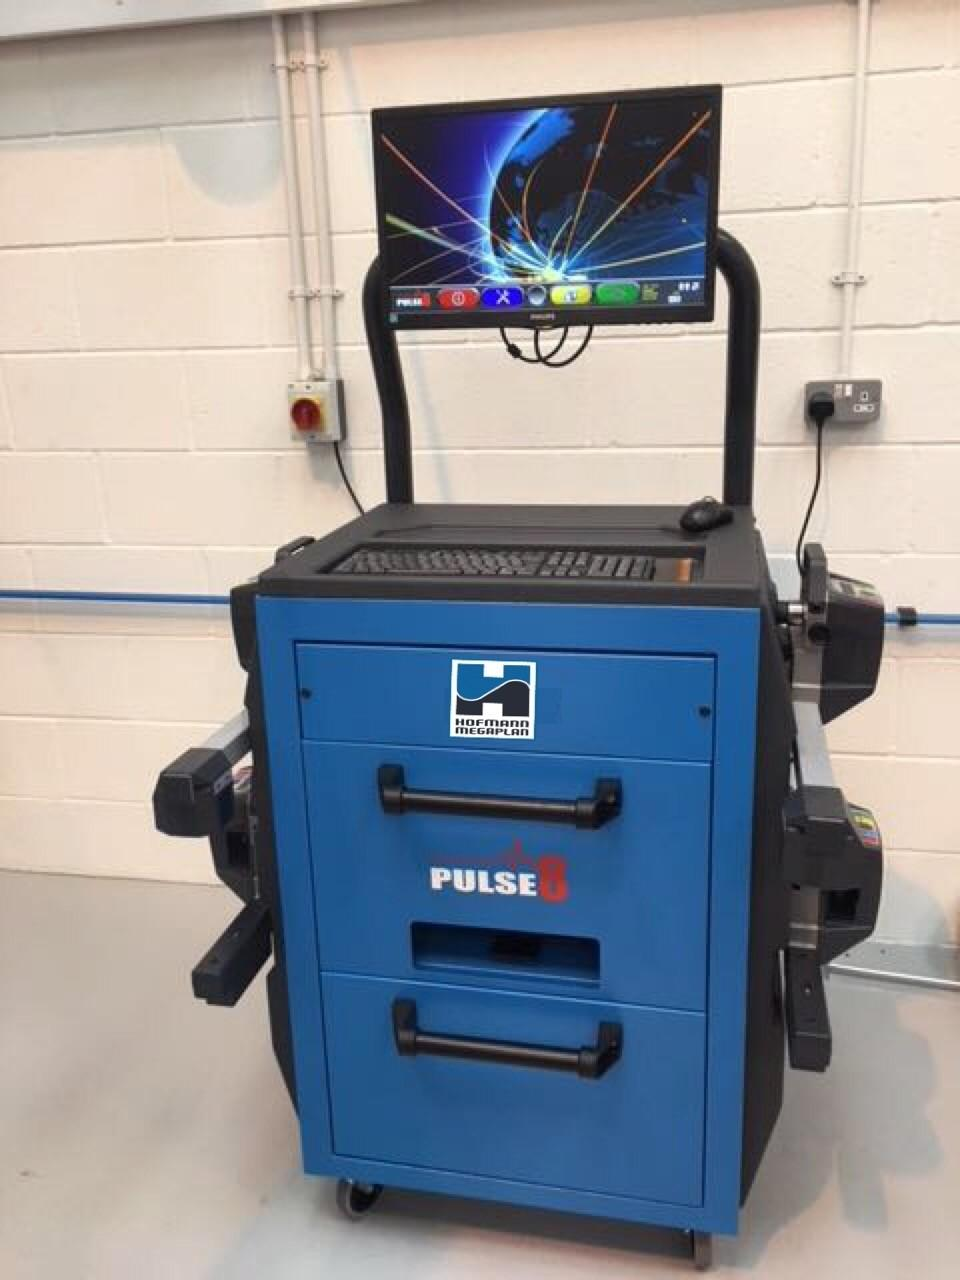 Pulse 8 at Automechanika 2018